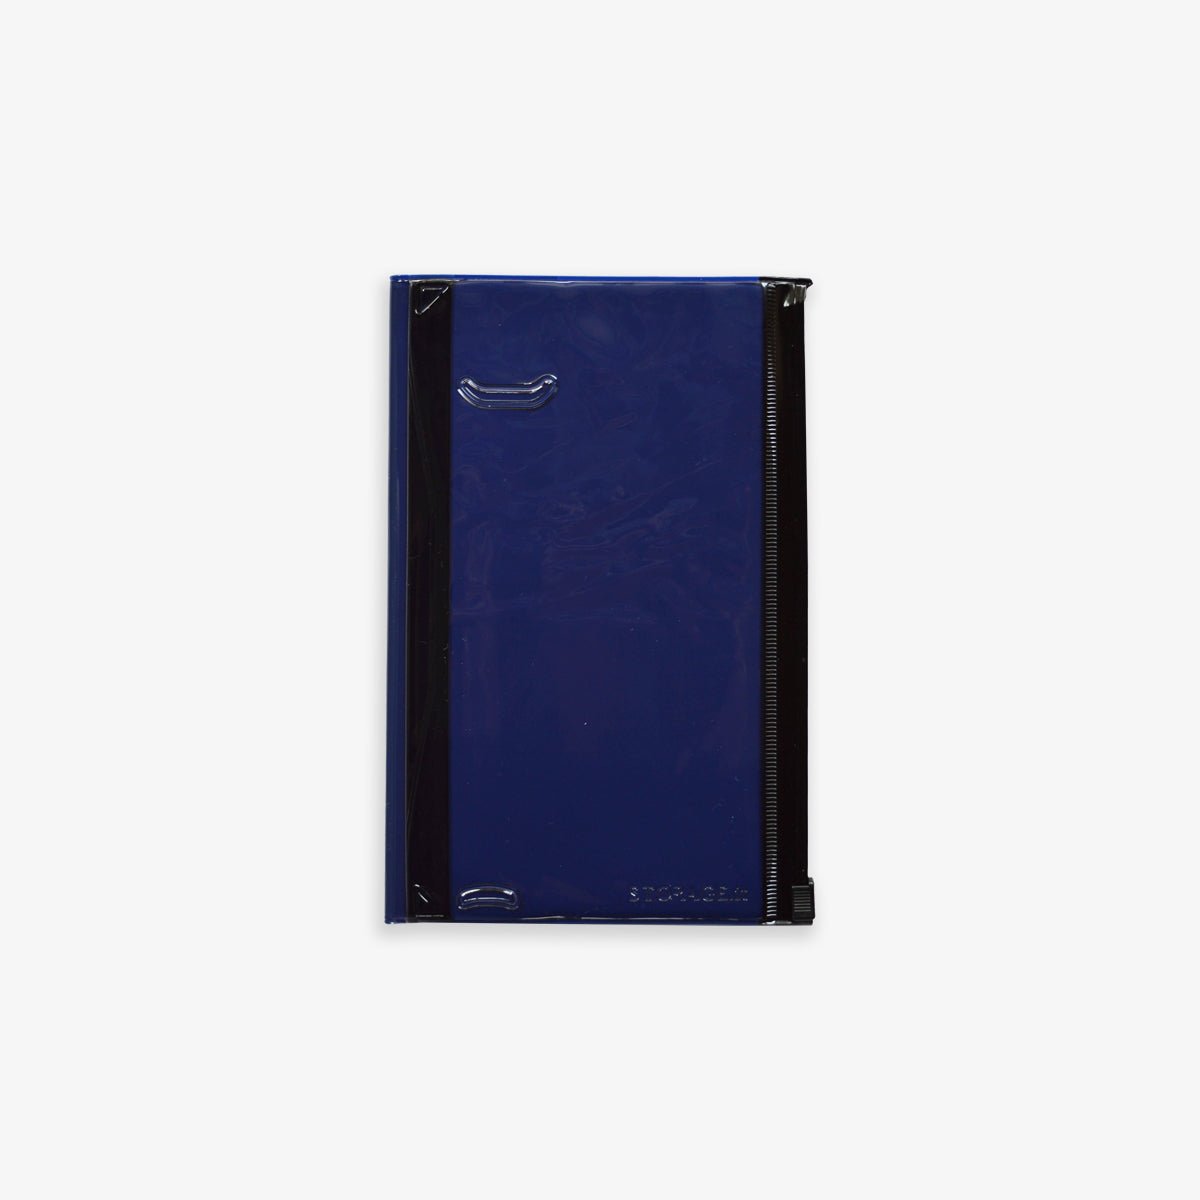 NOTEBOOK S, STORAGE IT // NAVY